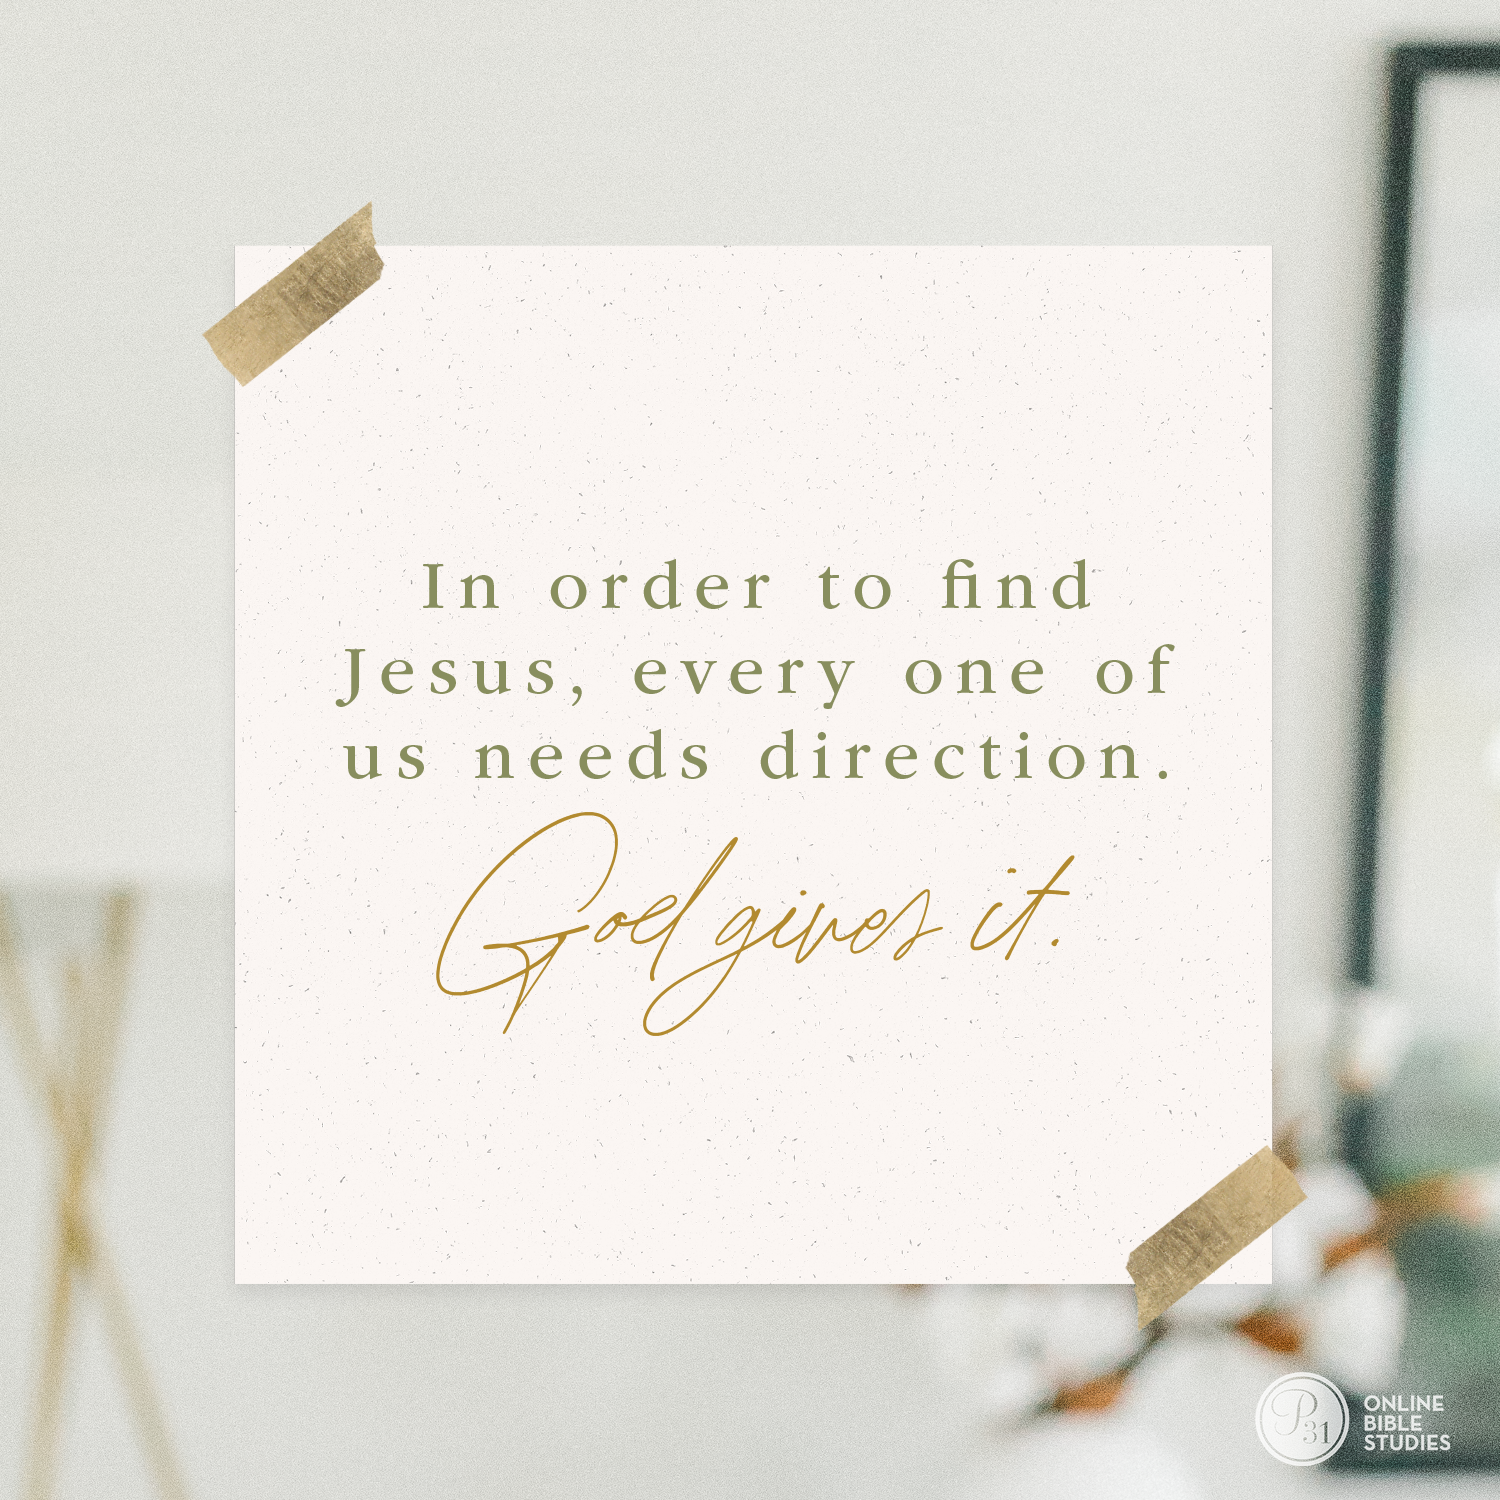 """In order to find Jesus, every one of us needs direction. God gives it."" - Max Lucado  #BecauseOfBethlehem 